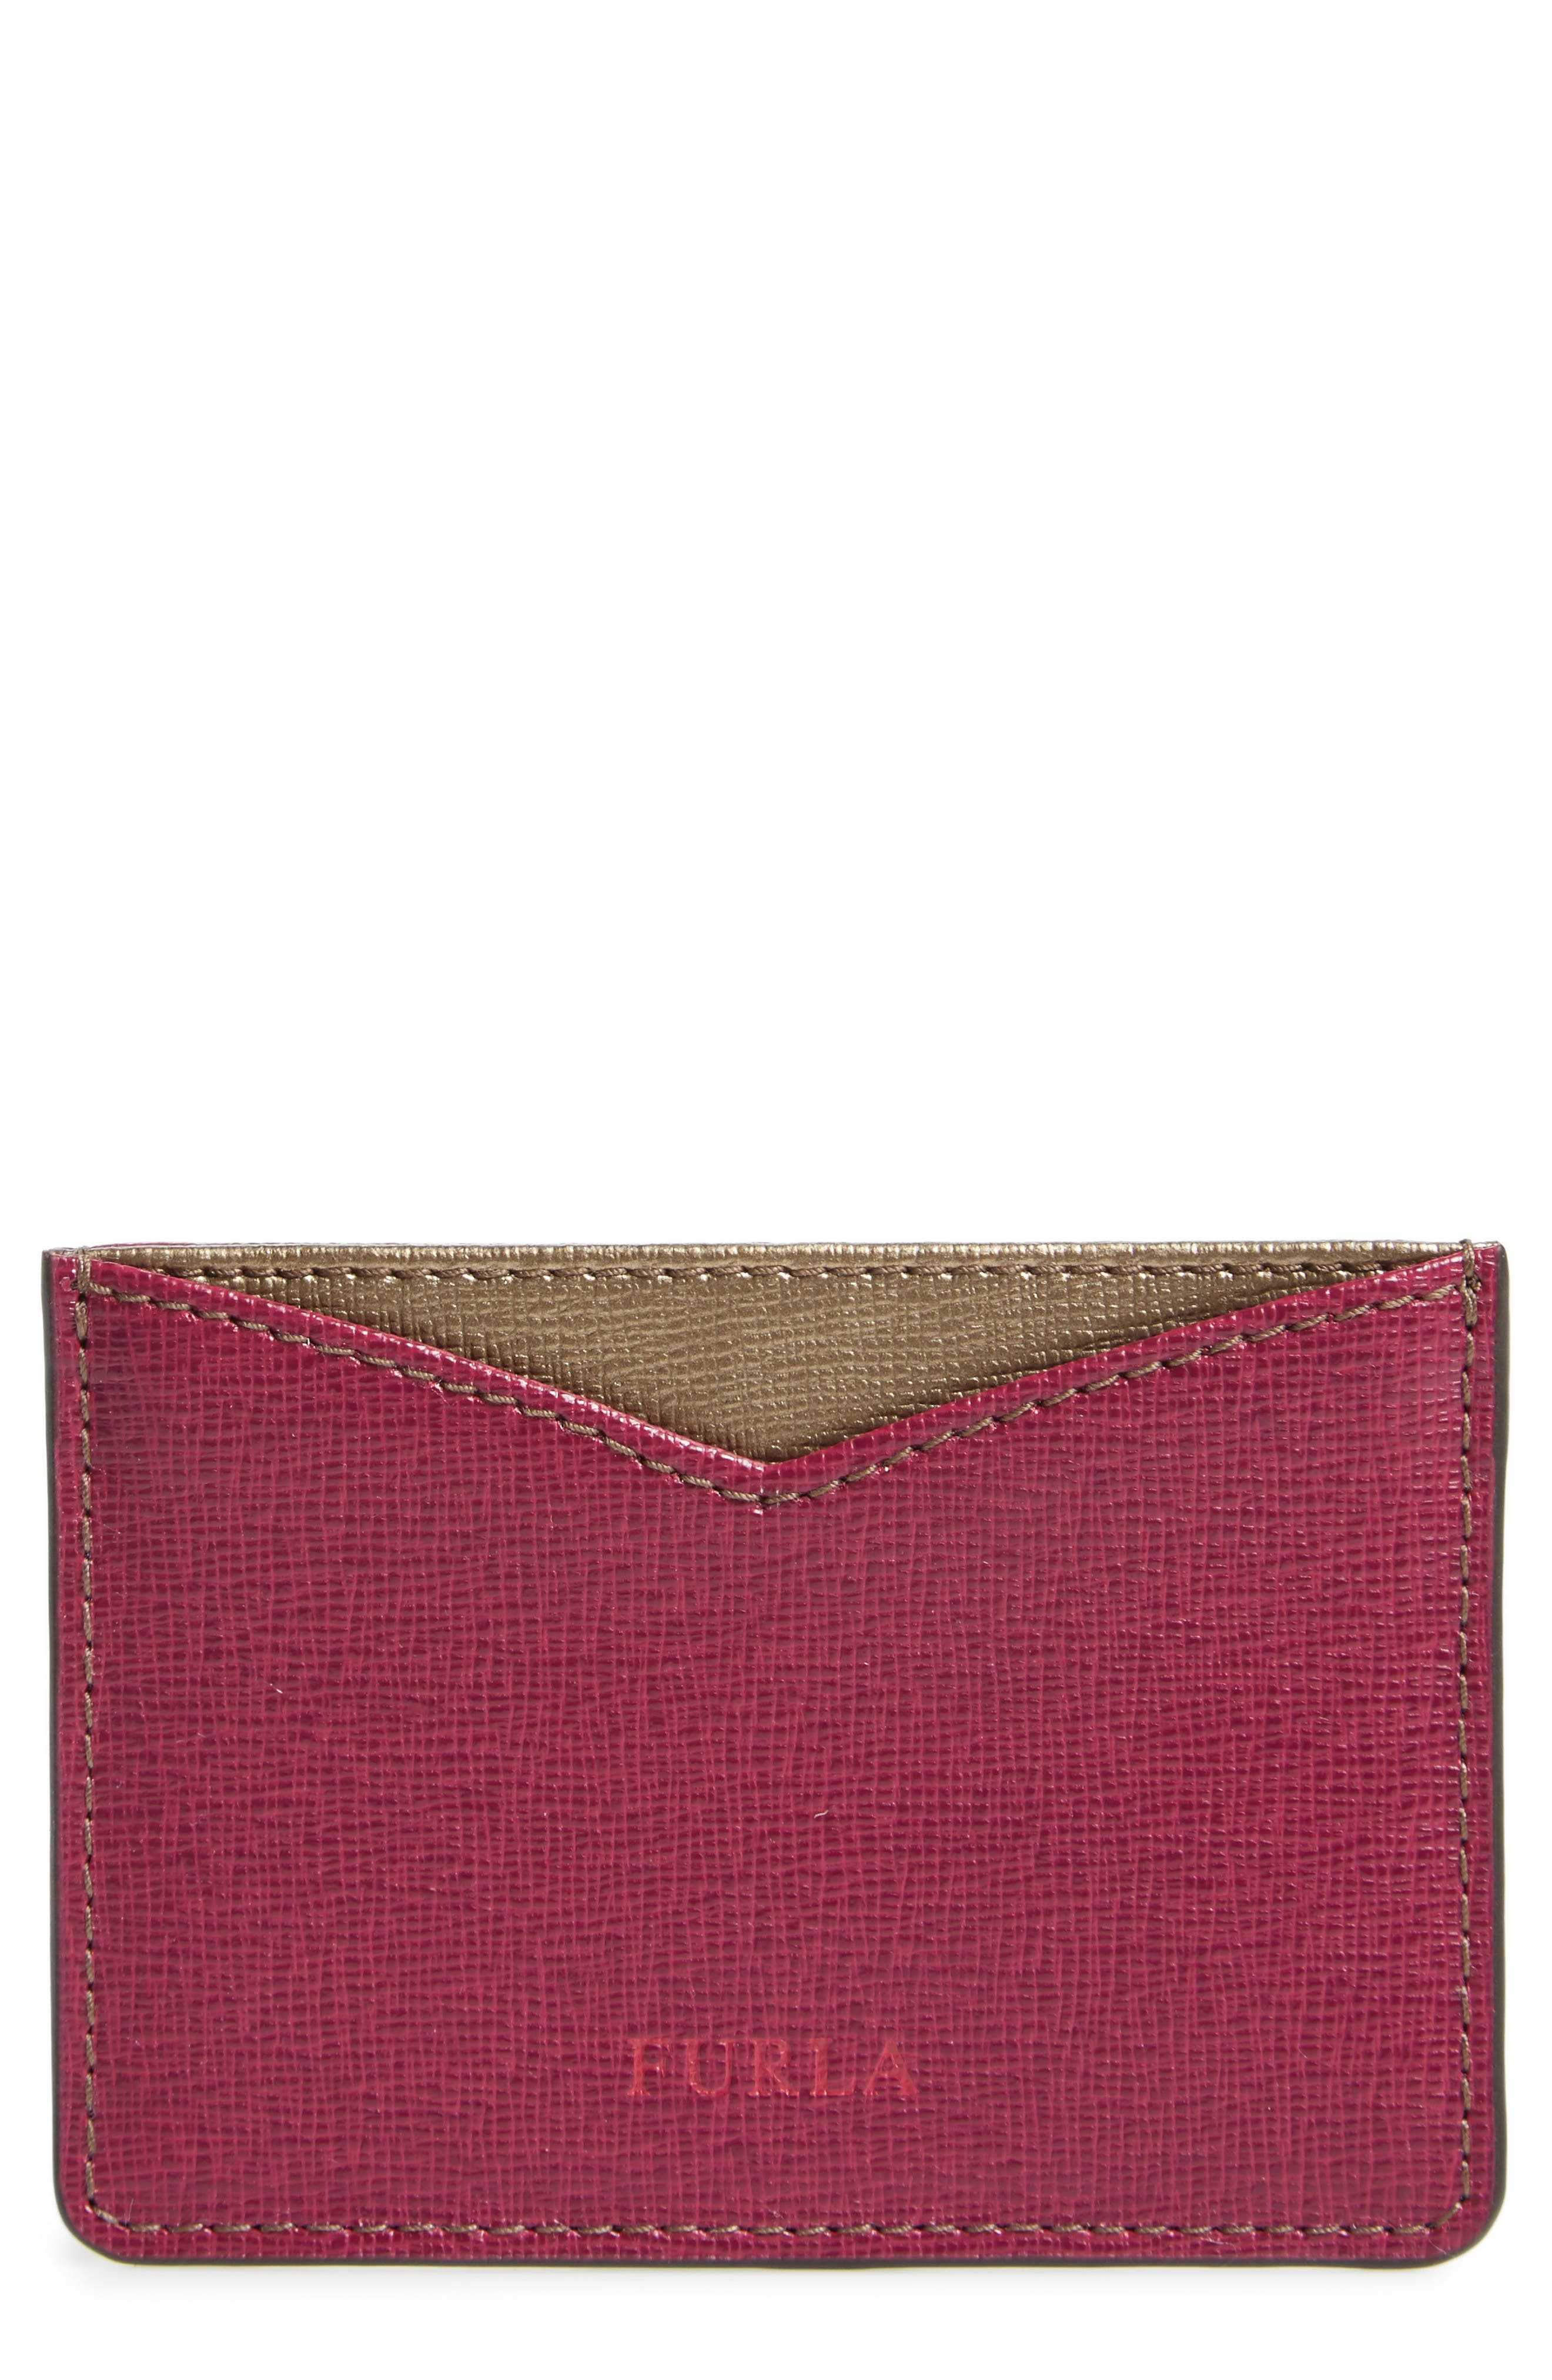 Gioia Saffiano Leather Card Case,                             Main thumbnail 1, color,                             Amarena+Color Bronzo